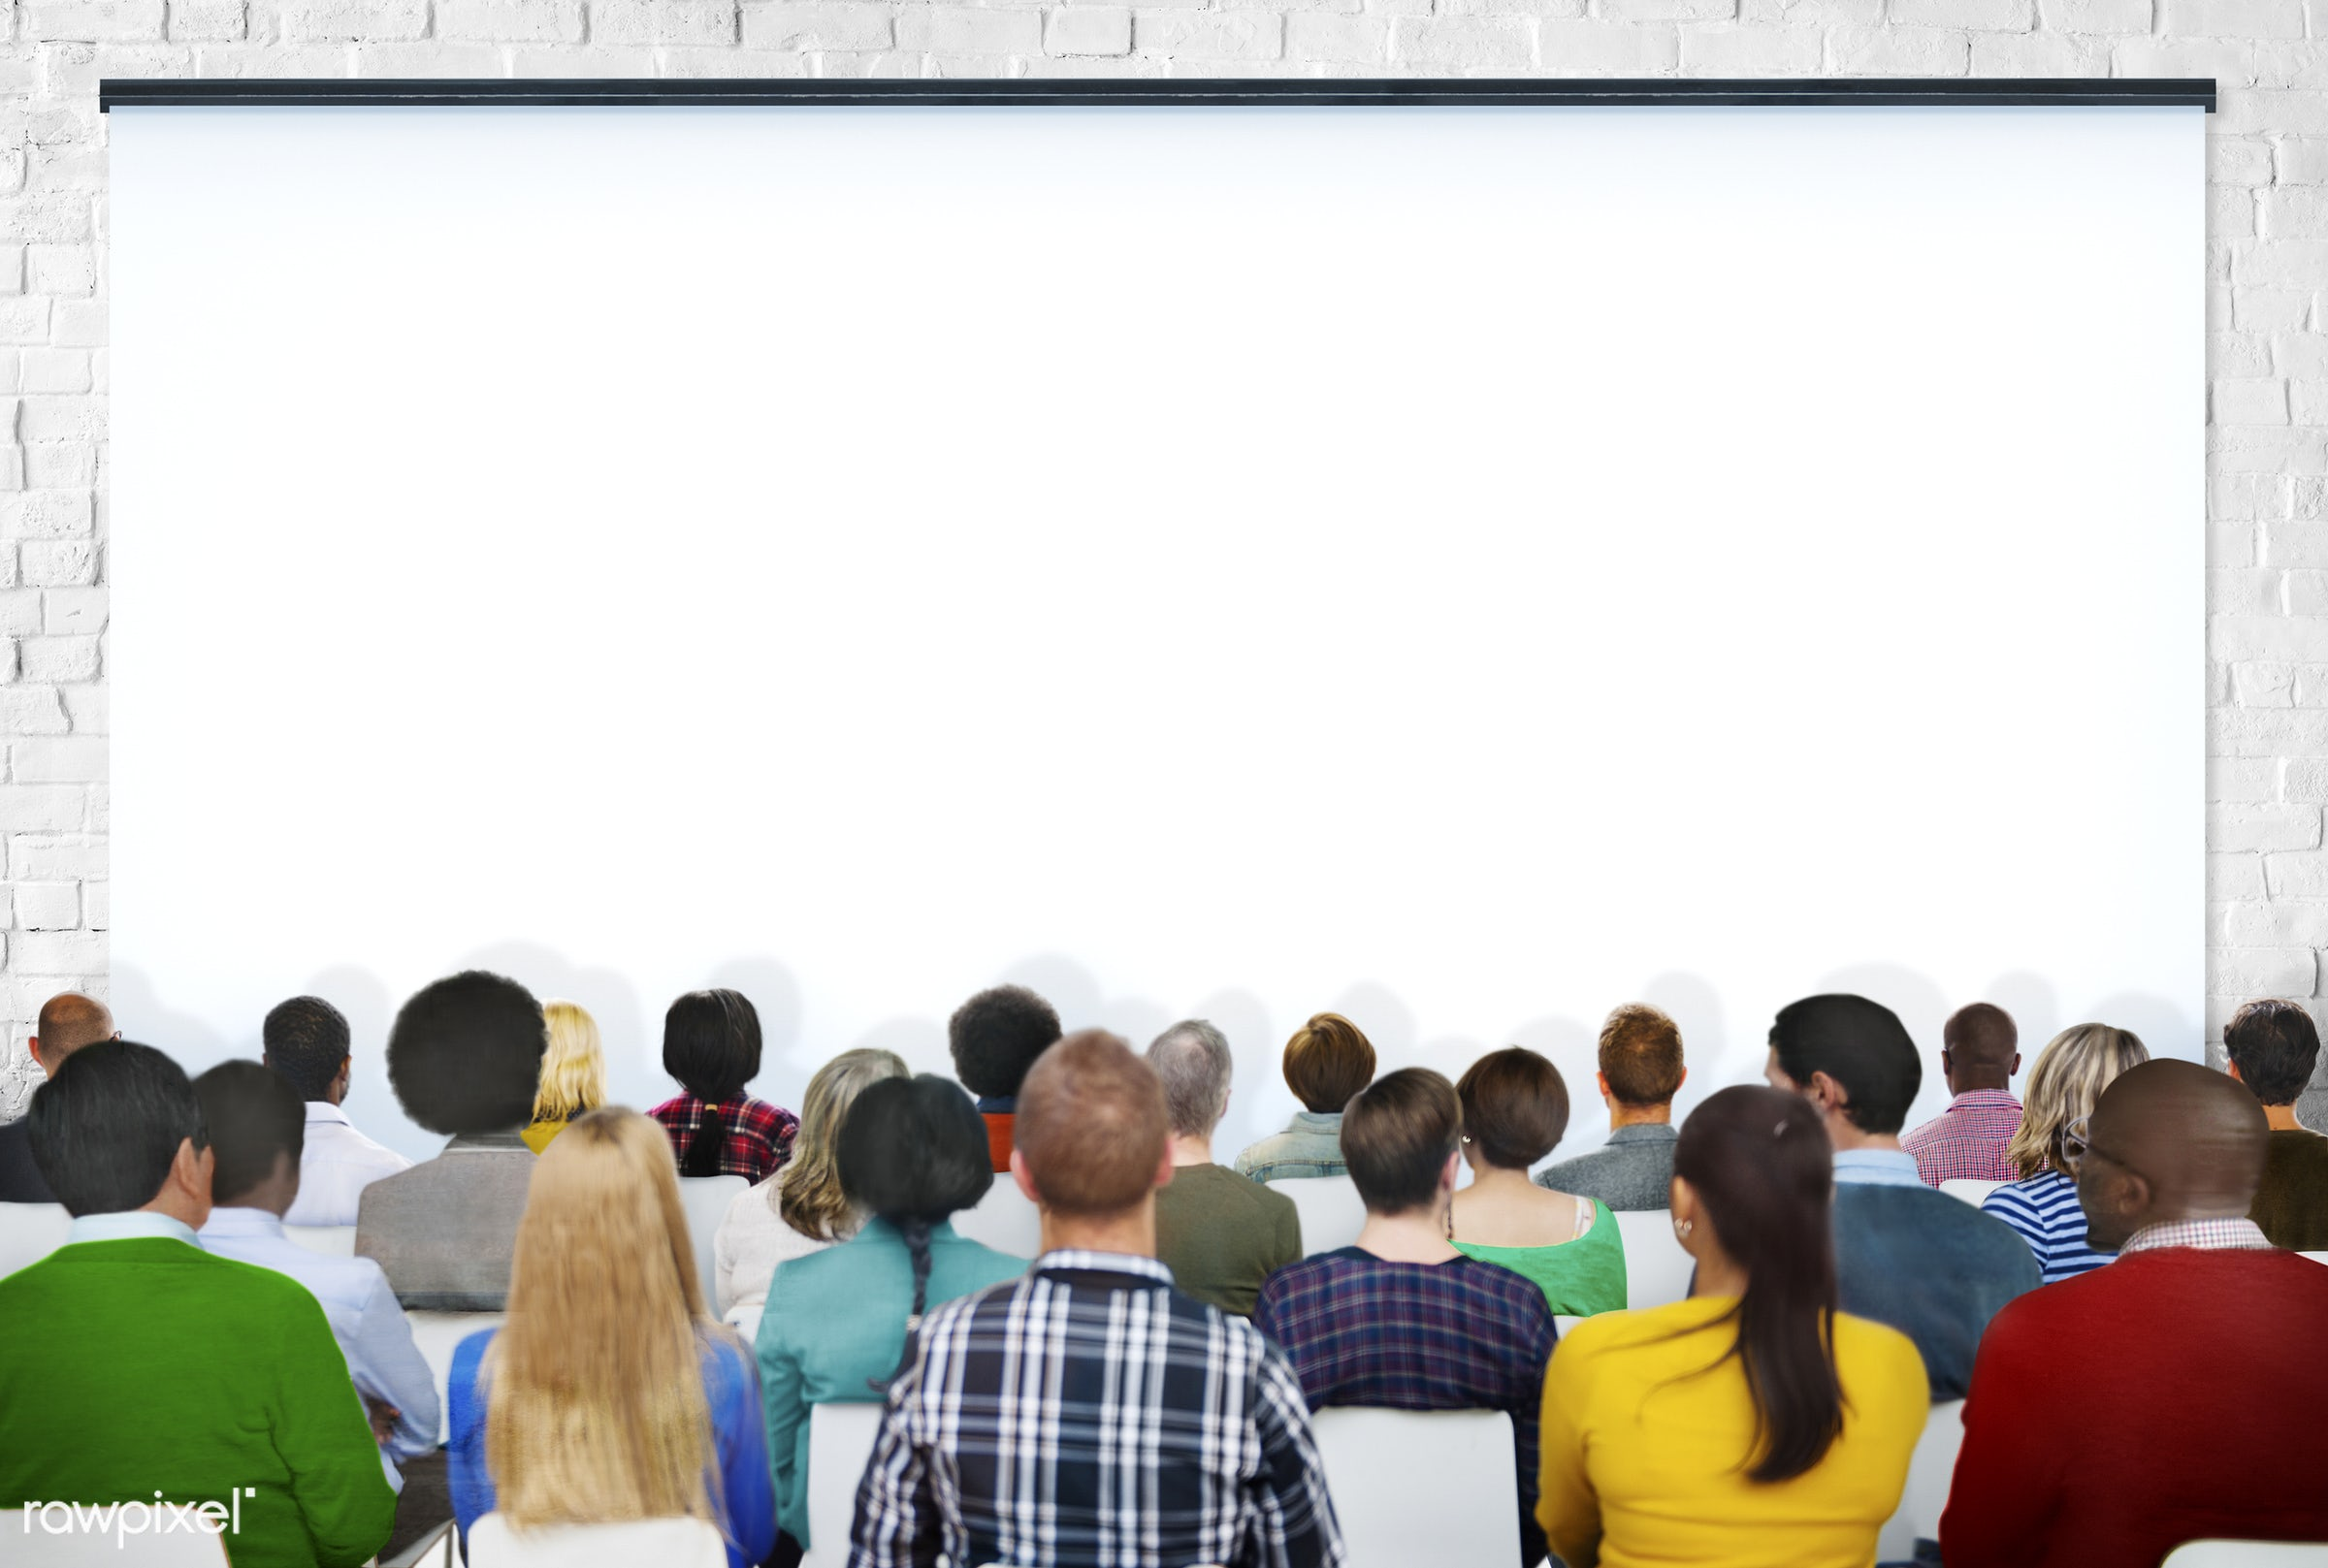 projection screen, white, adult, african, african descent, asian, asian ethnicity, audience, brick, brick wall, casual,...